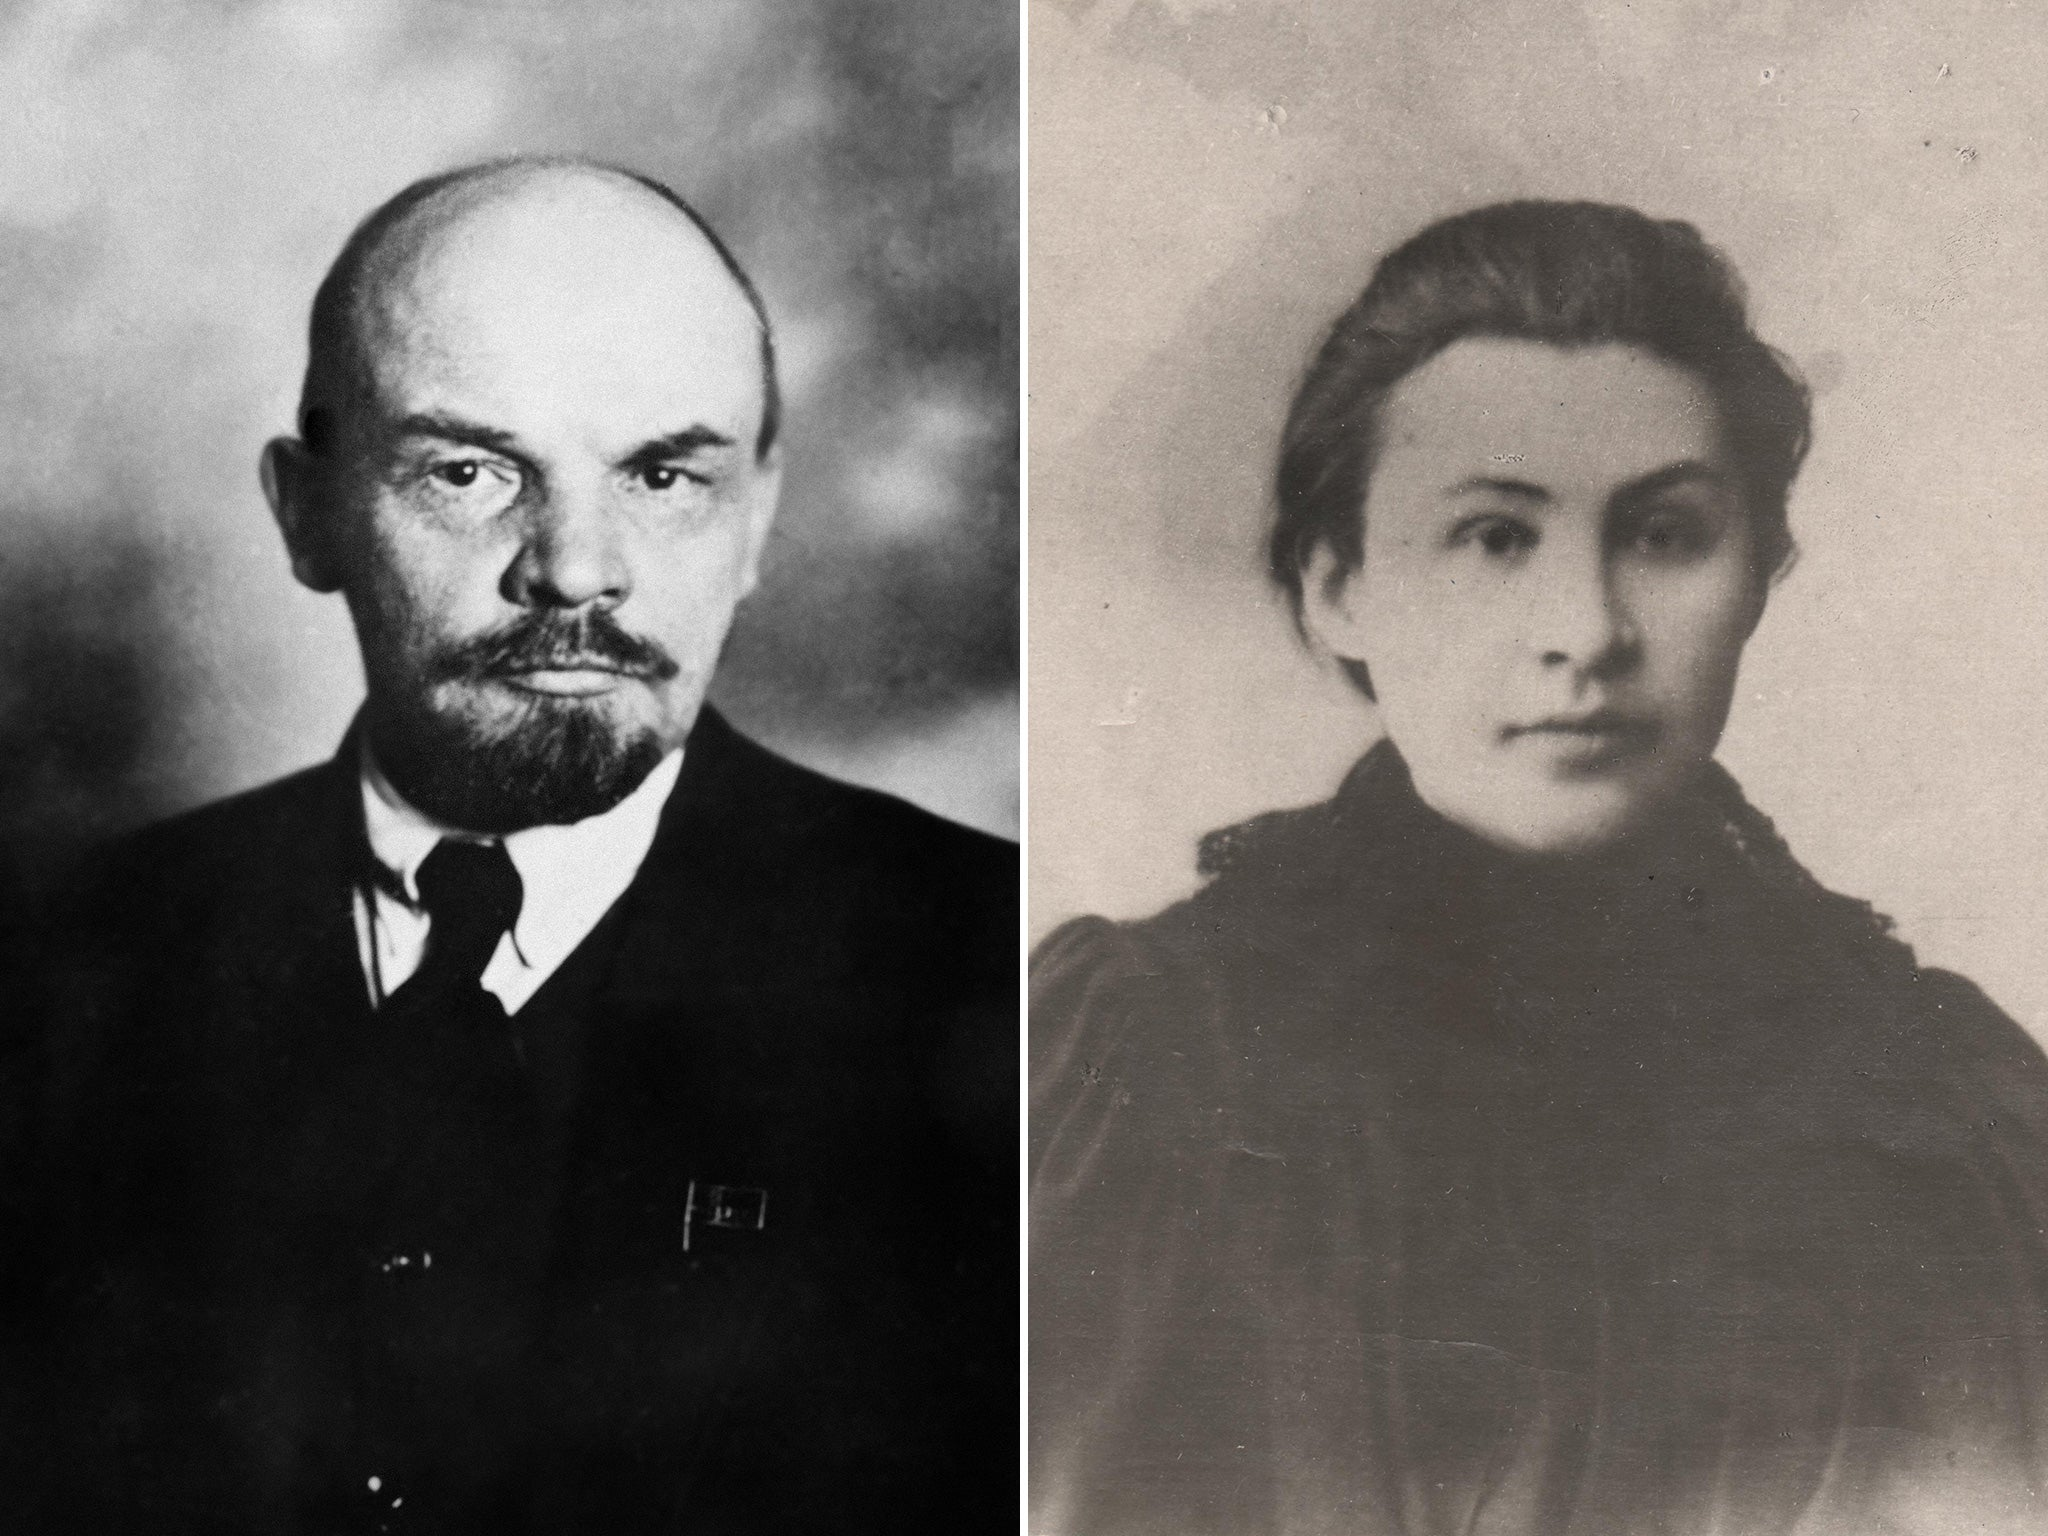 apollinariya yakubova the face of the w vladimir lenin loved apollinariya yakubova the face of the w vladimir lenin loved most is revealed the independent